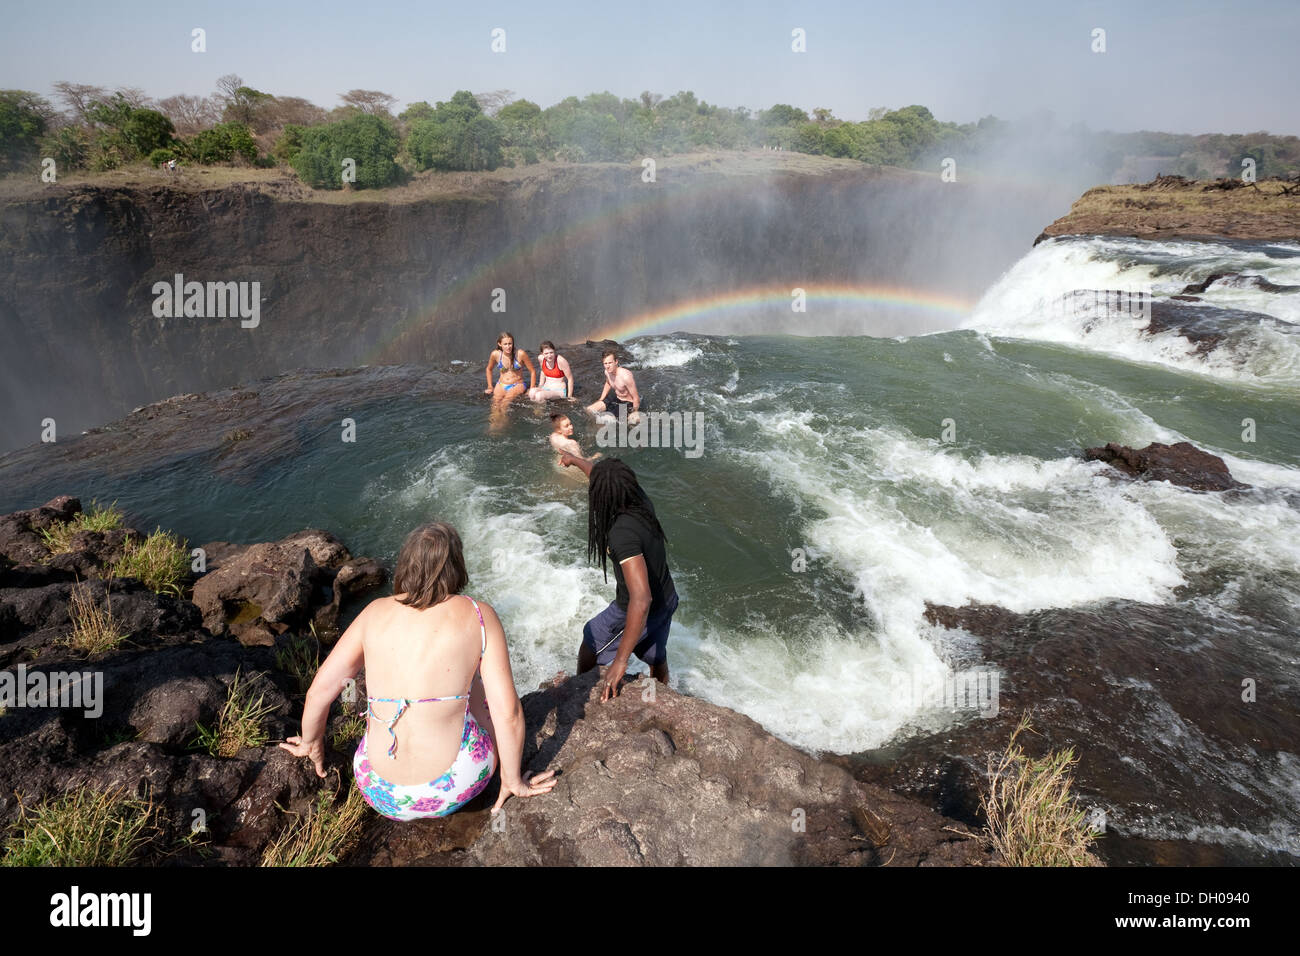 People Swimming In Devils Pool At The Edge Of The Victoria Falls Stock Photo Royalty Free Image